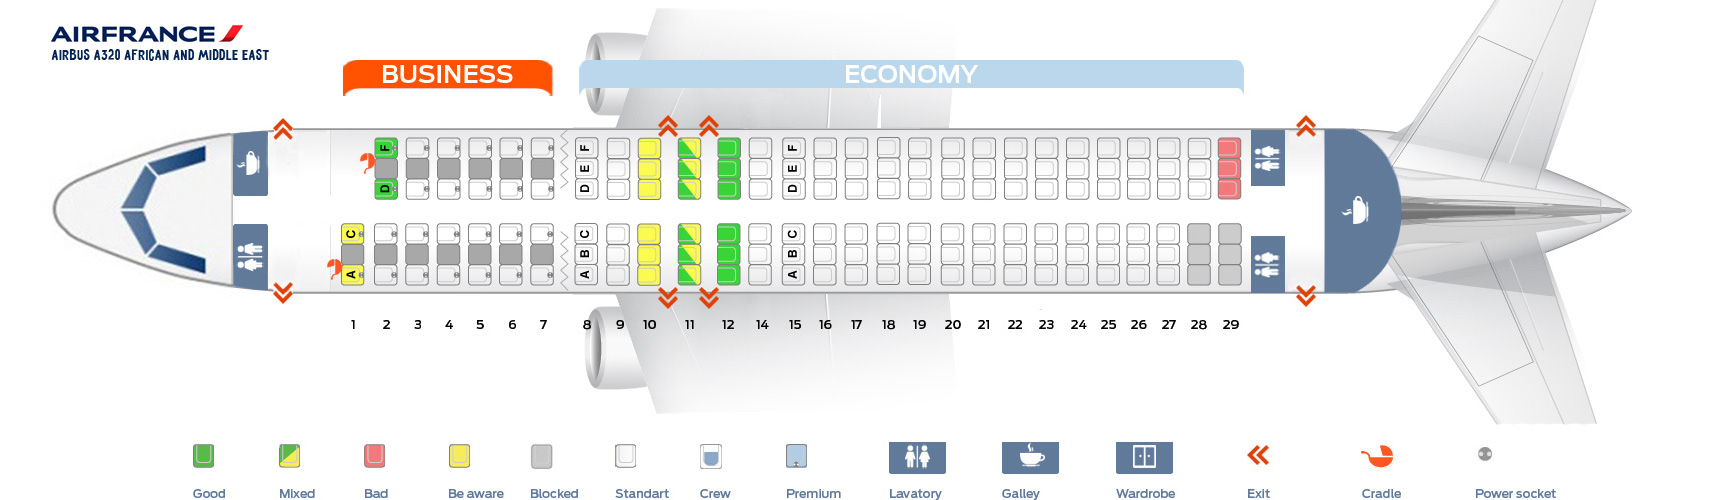 Seat Map Airbus A320 African and Middle East Air France